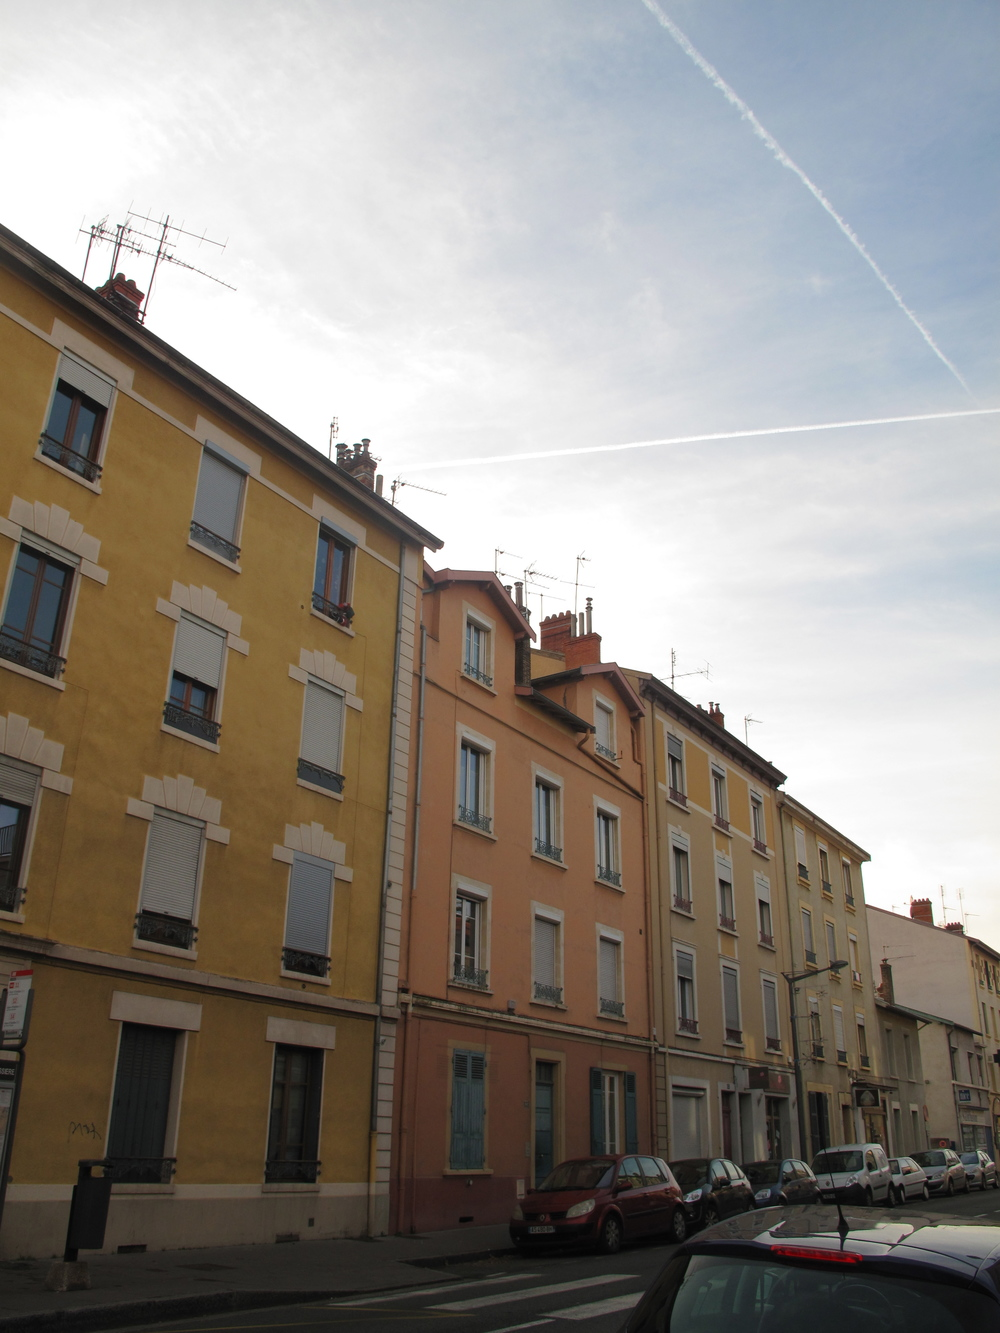 Oullins houses in Lyon, France